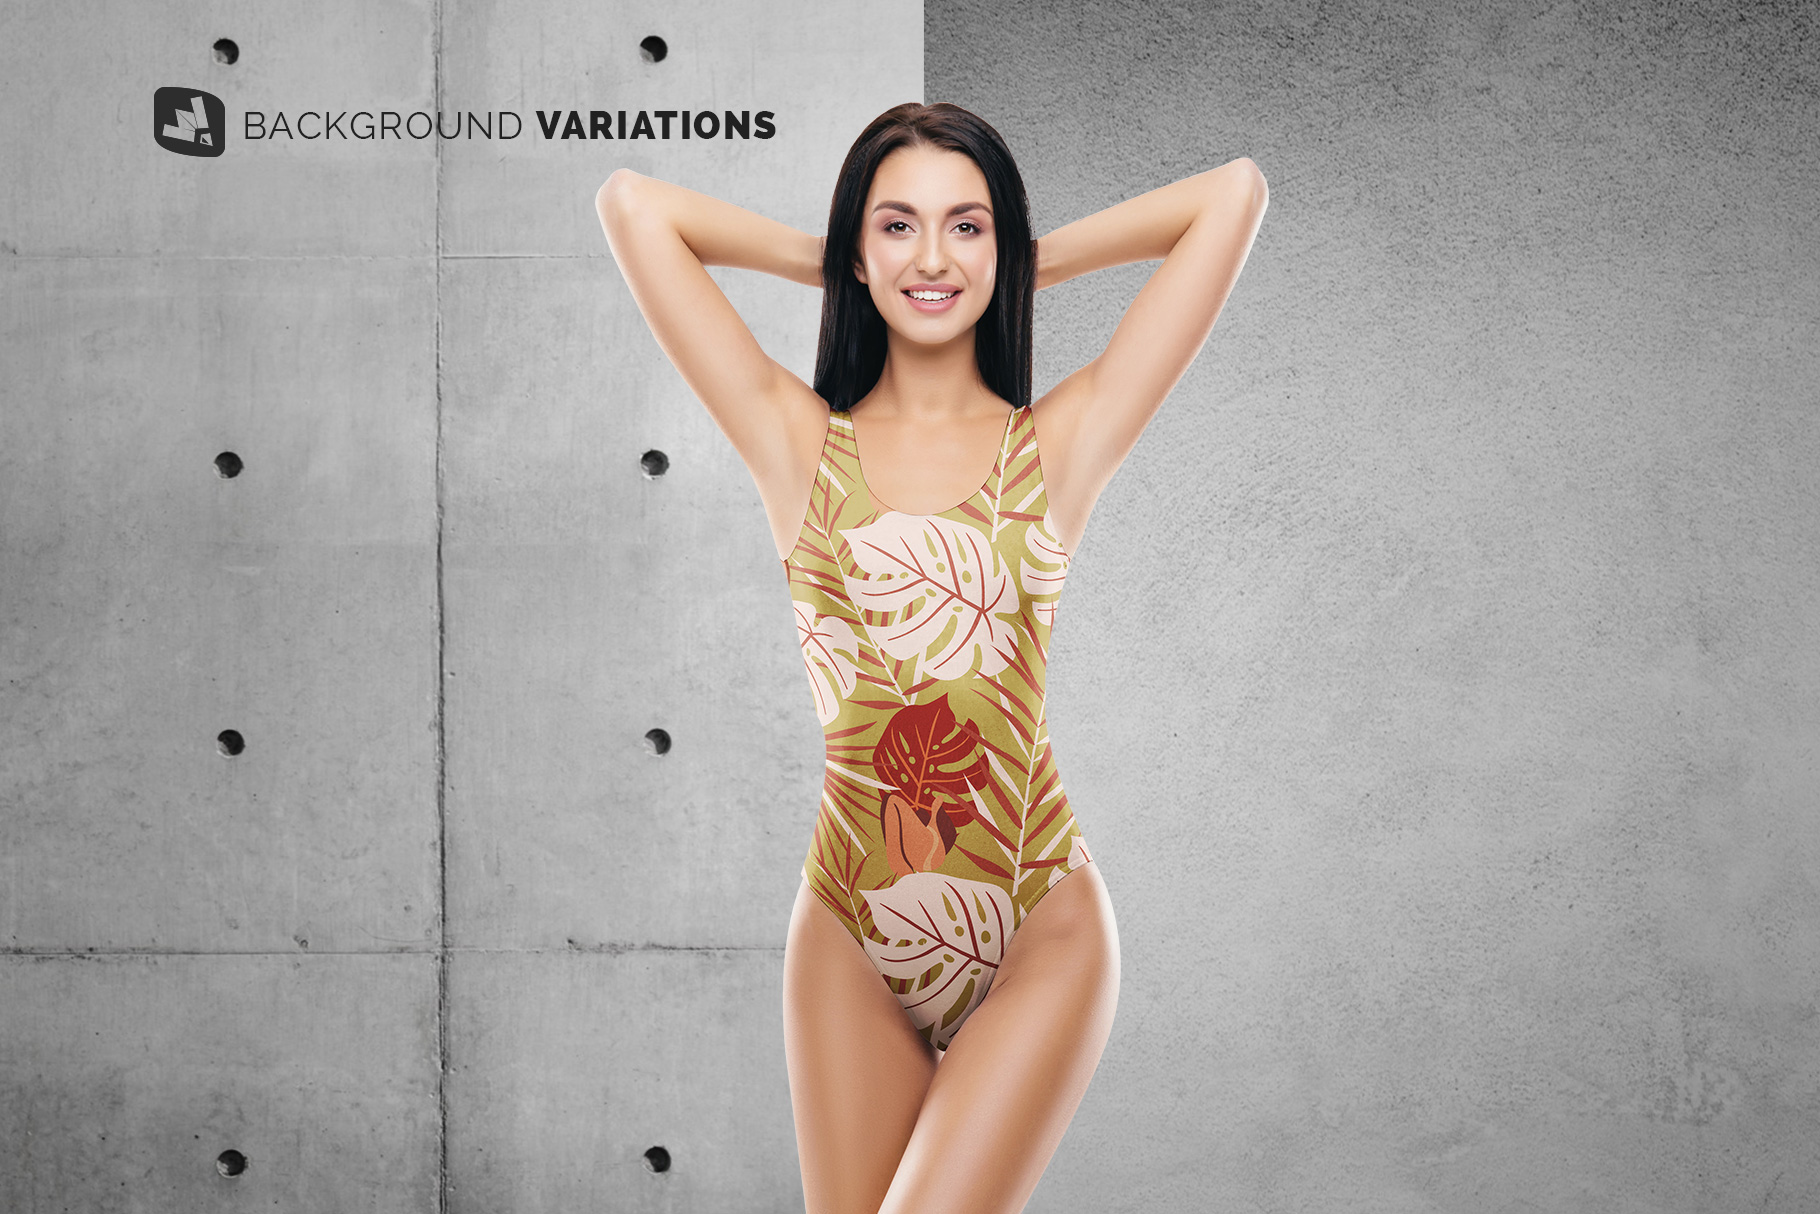 background options of the women's swimsuit mockup